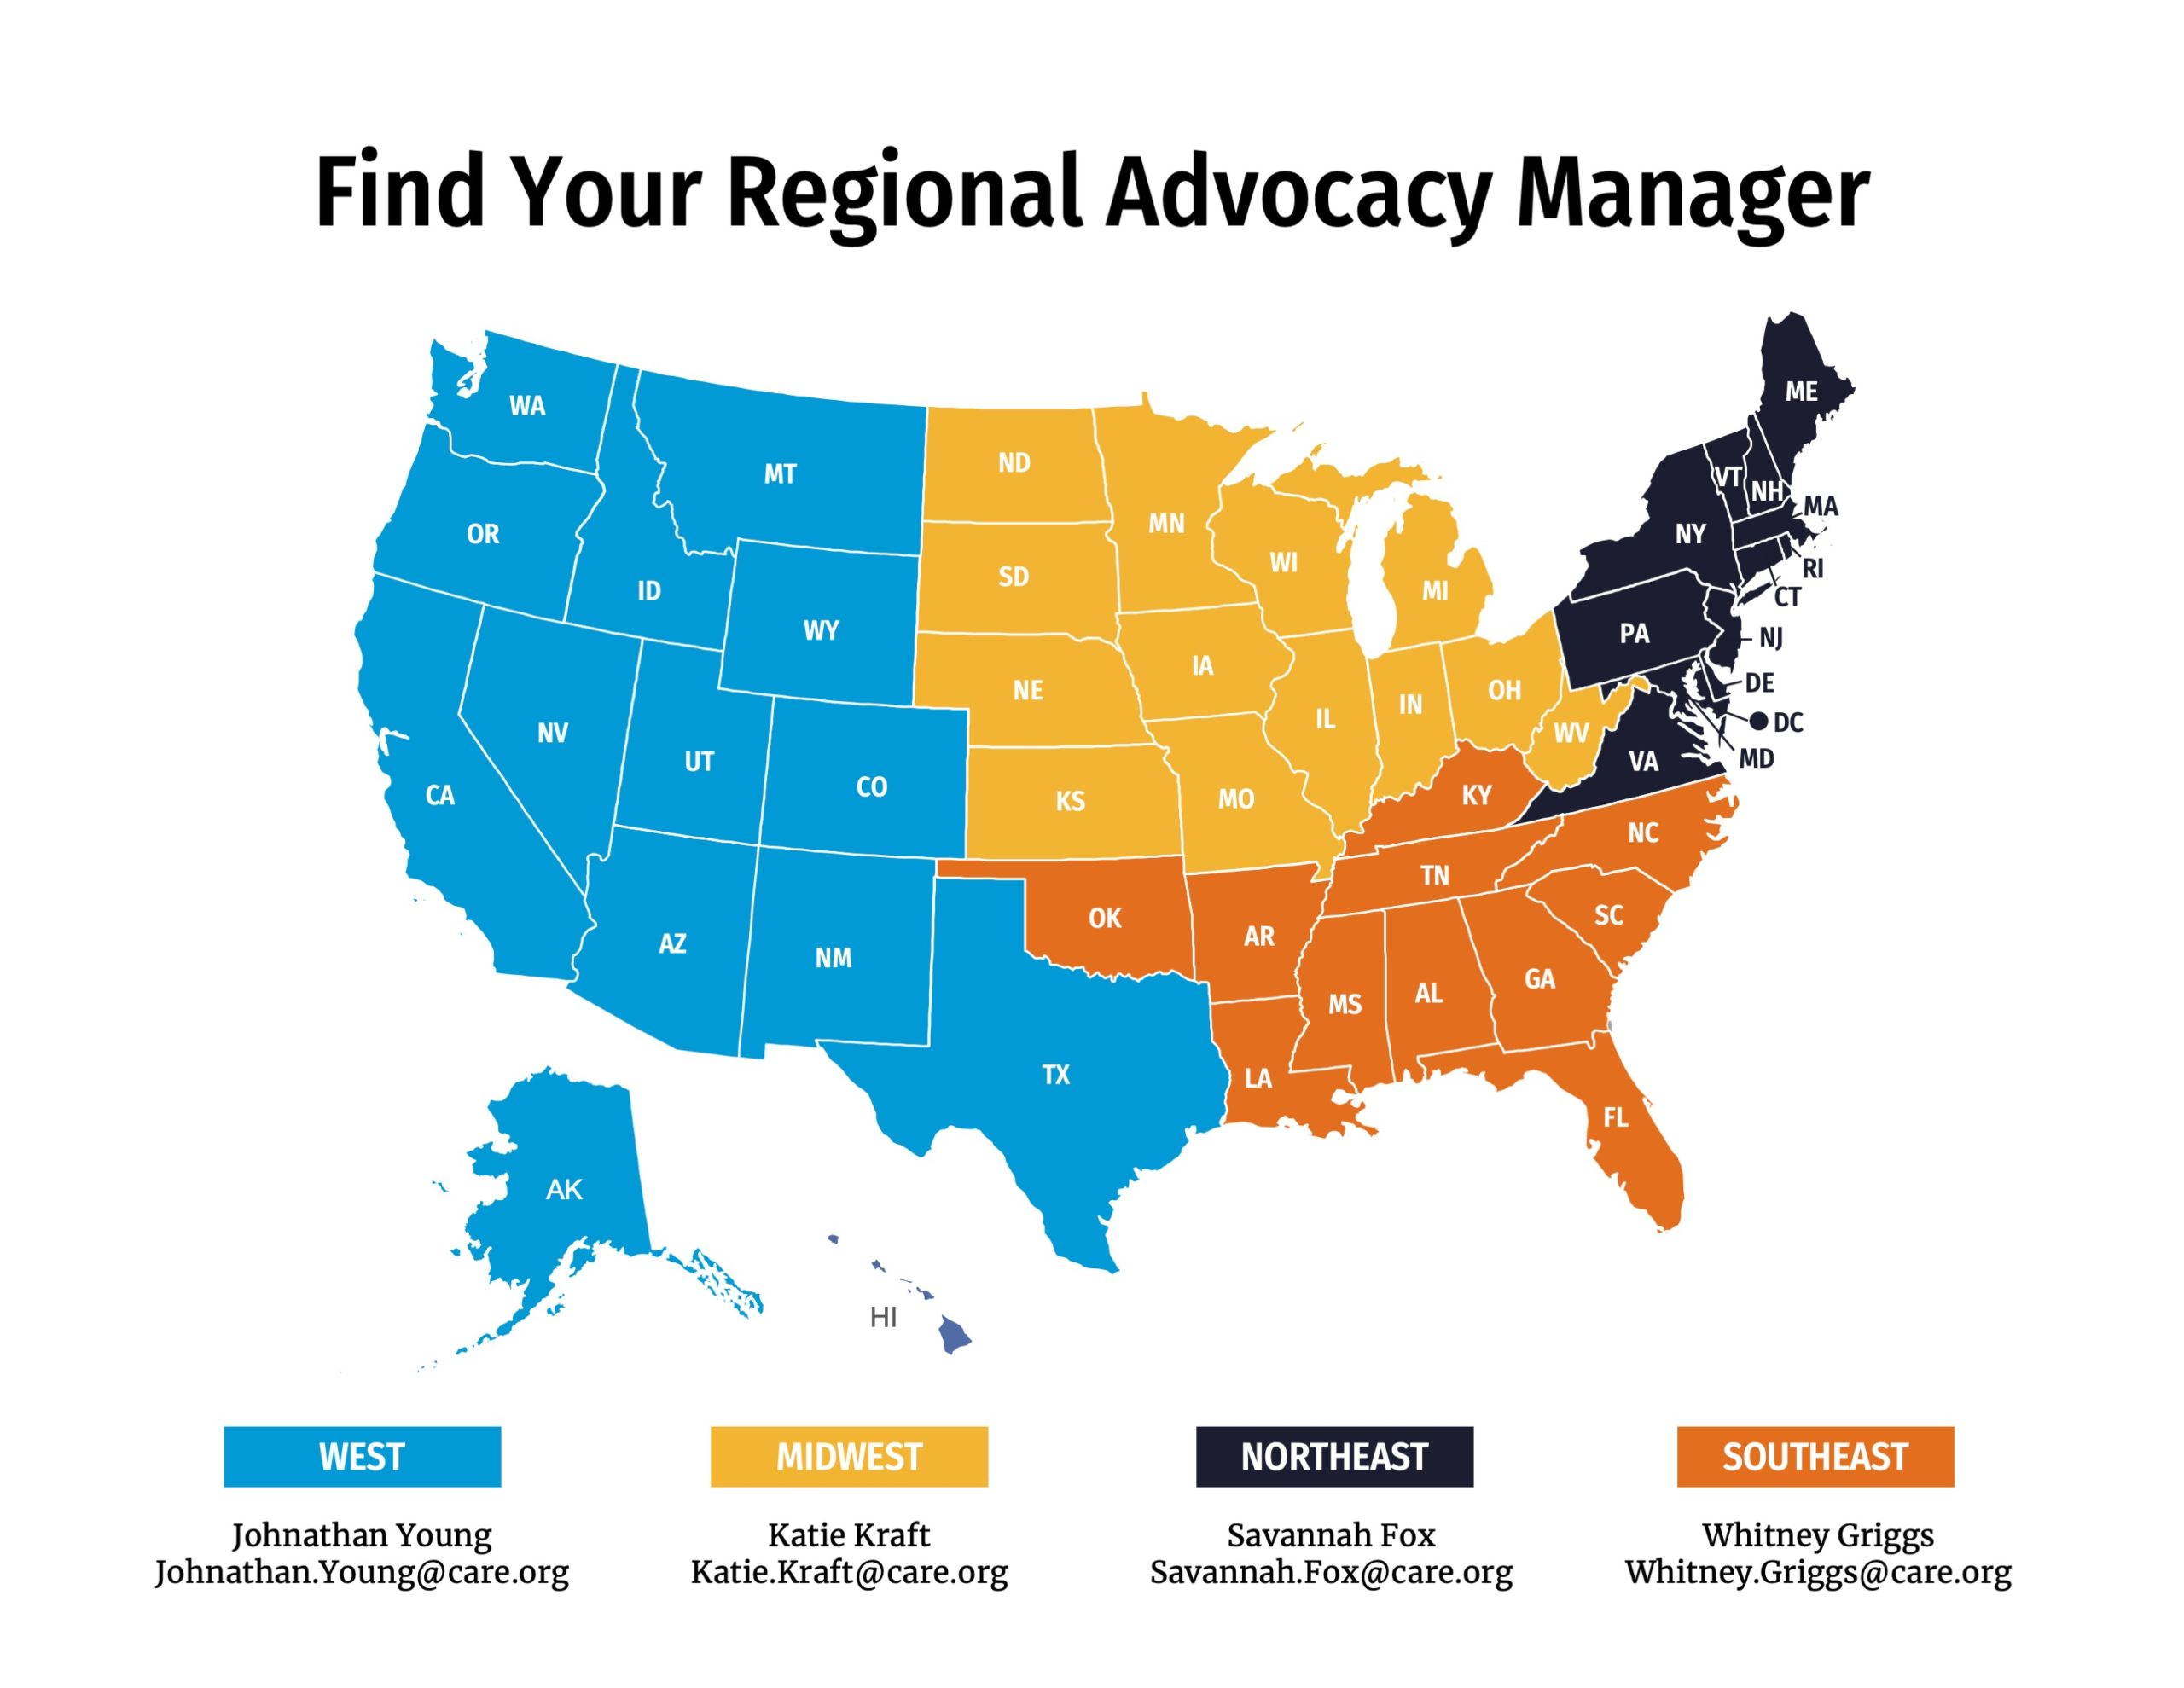 A map of the US showing CARE Action's regional advocacy managers.